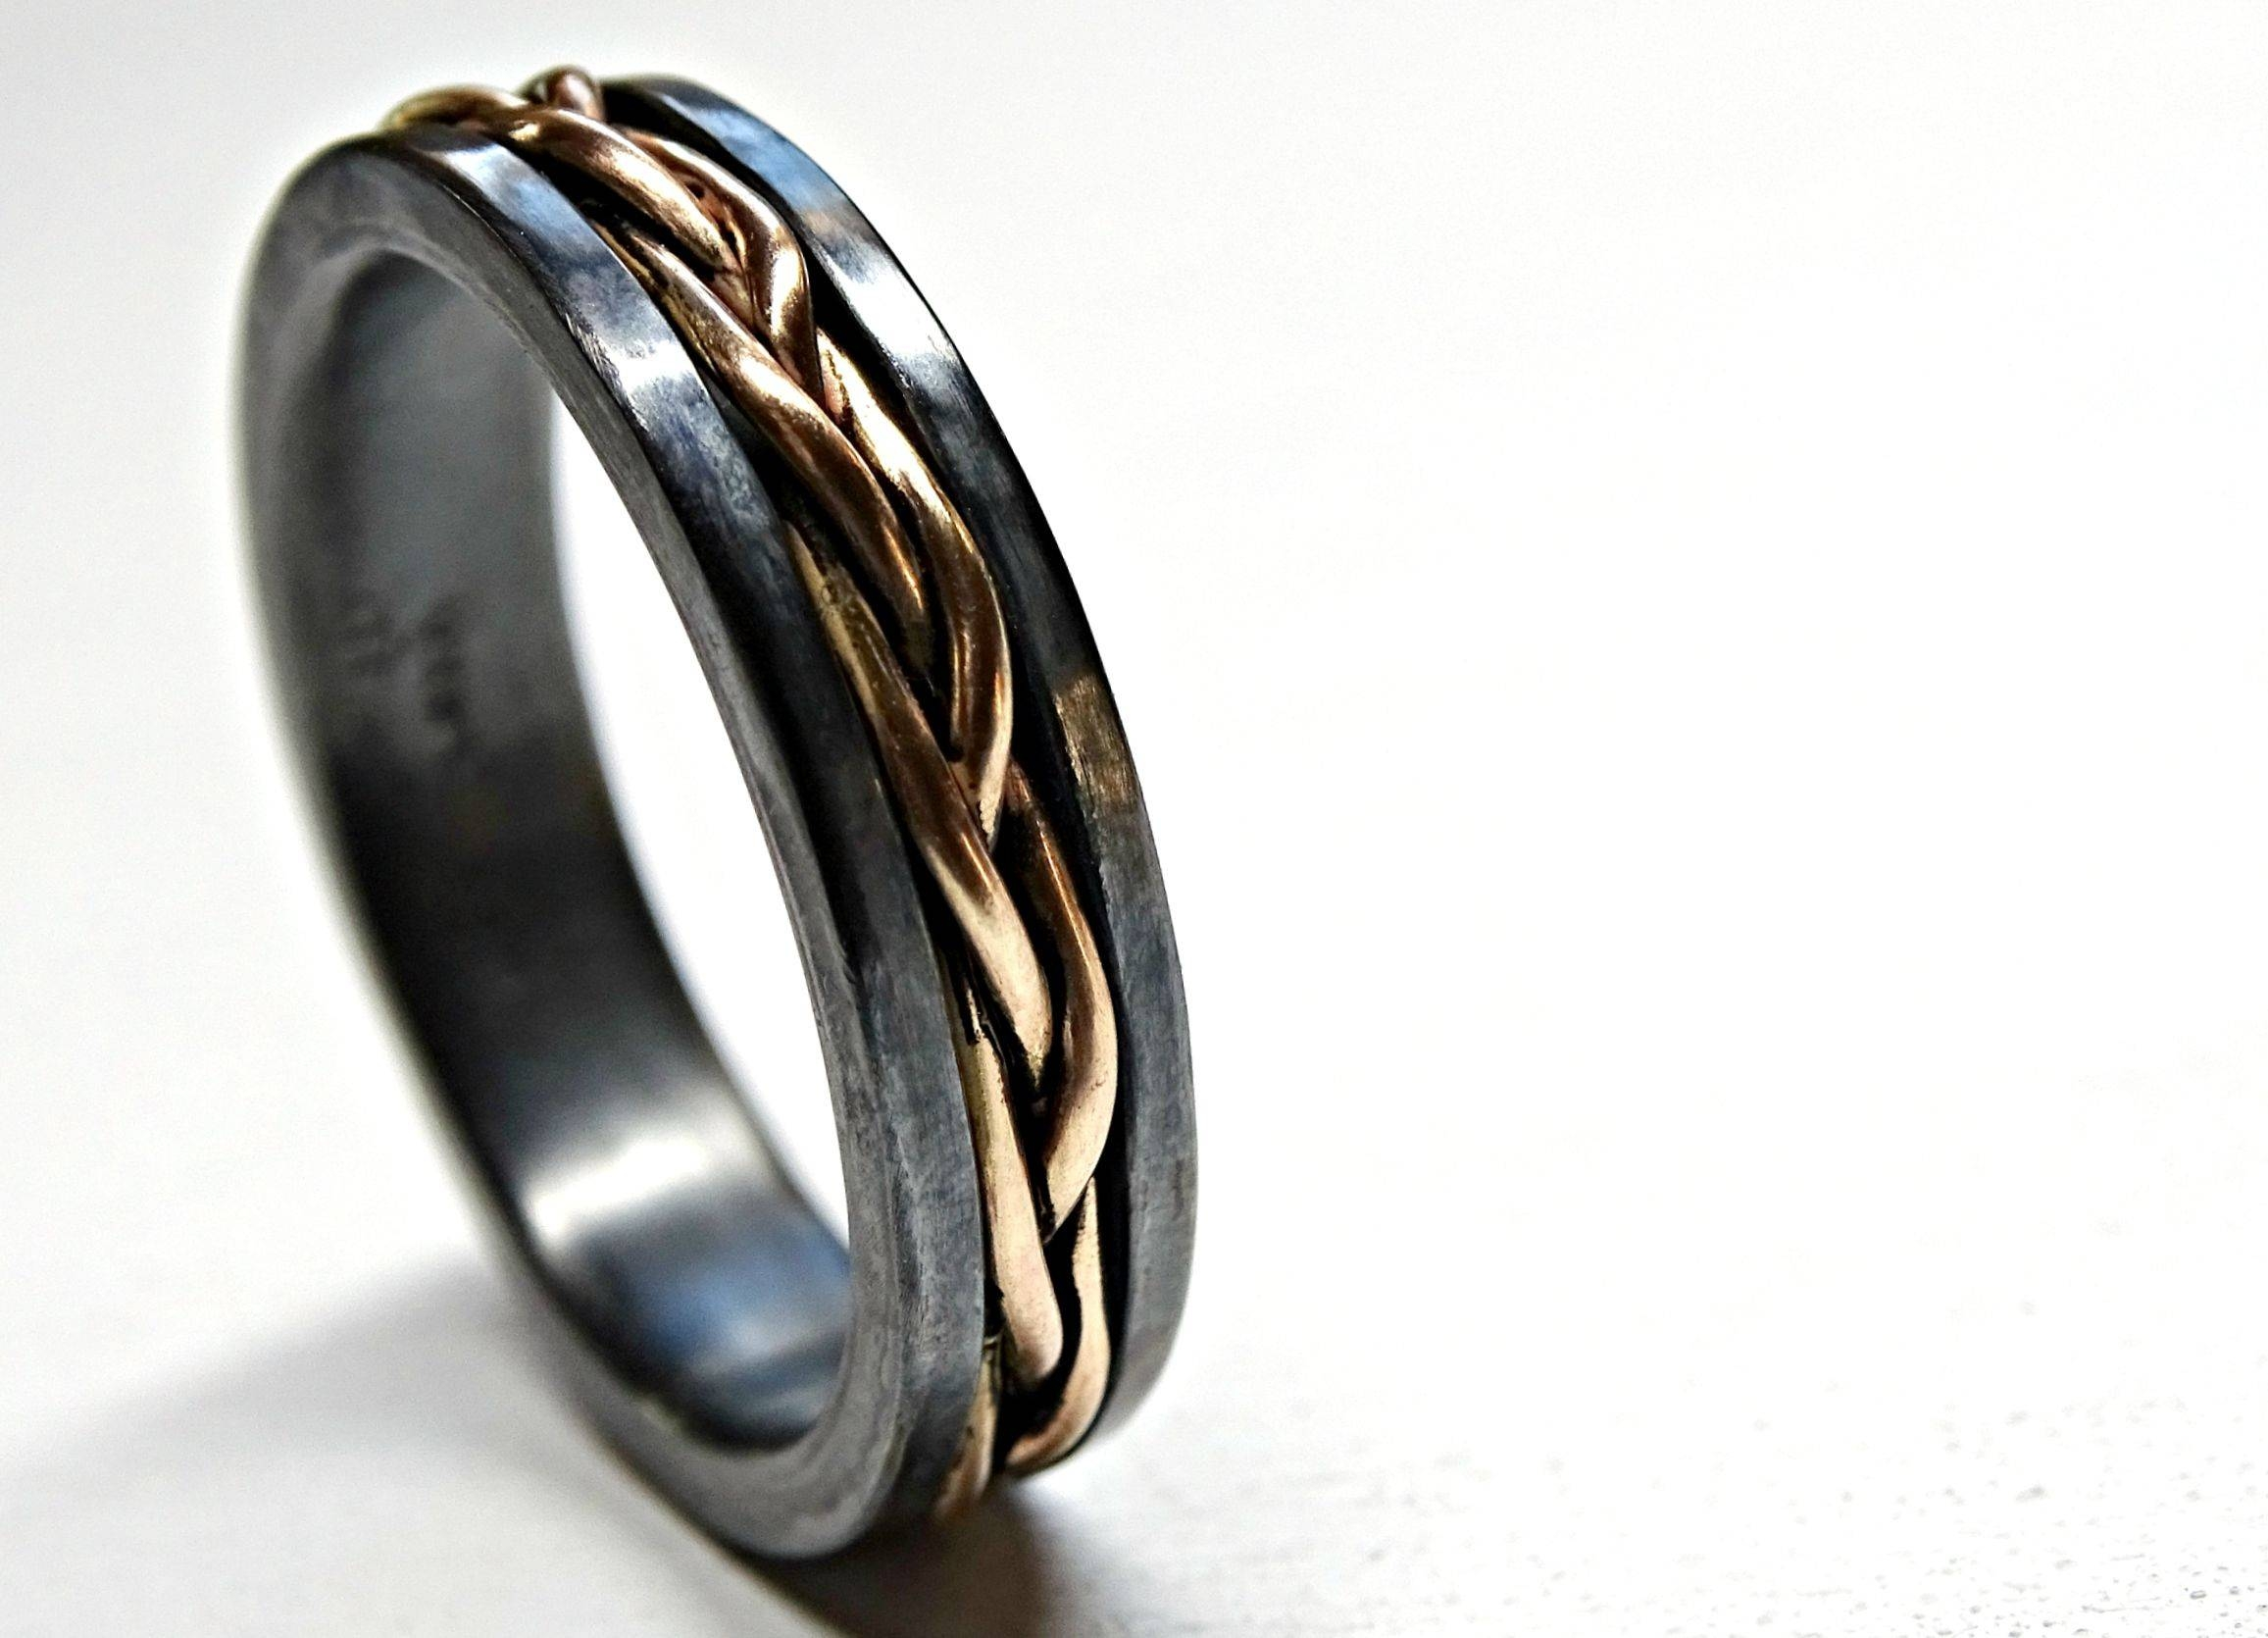 Buy A Hand Crafted Mens Viking Wedding Band, Celtic Promise Ring With Regard To Viking Wedding Bands (View 4 of 15)